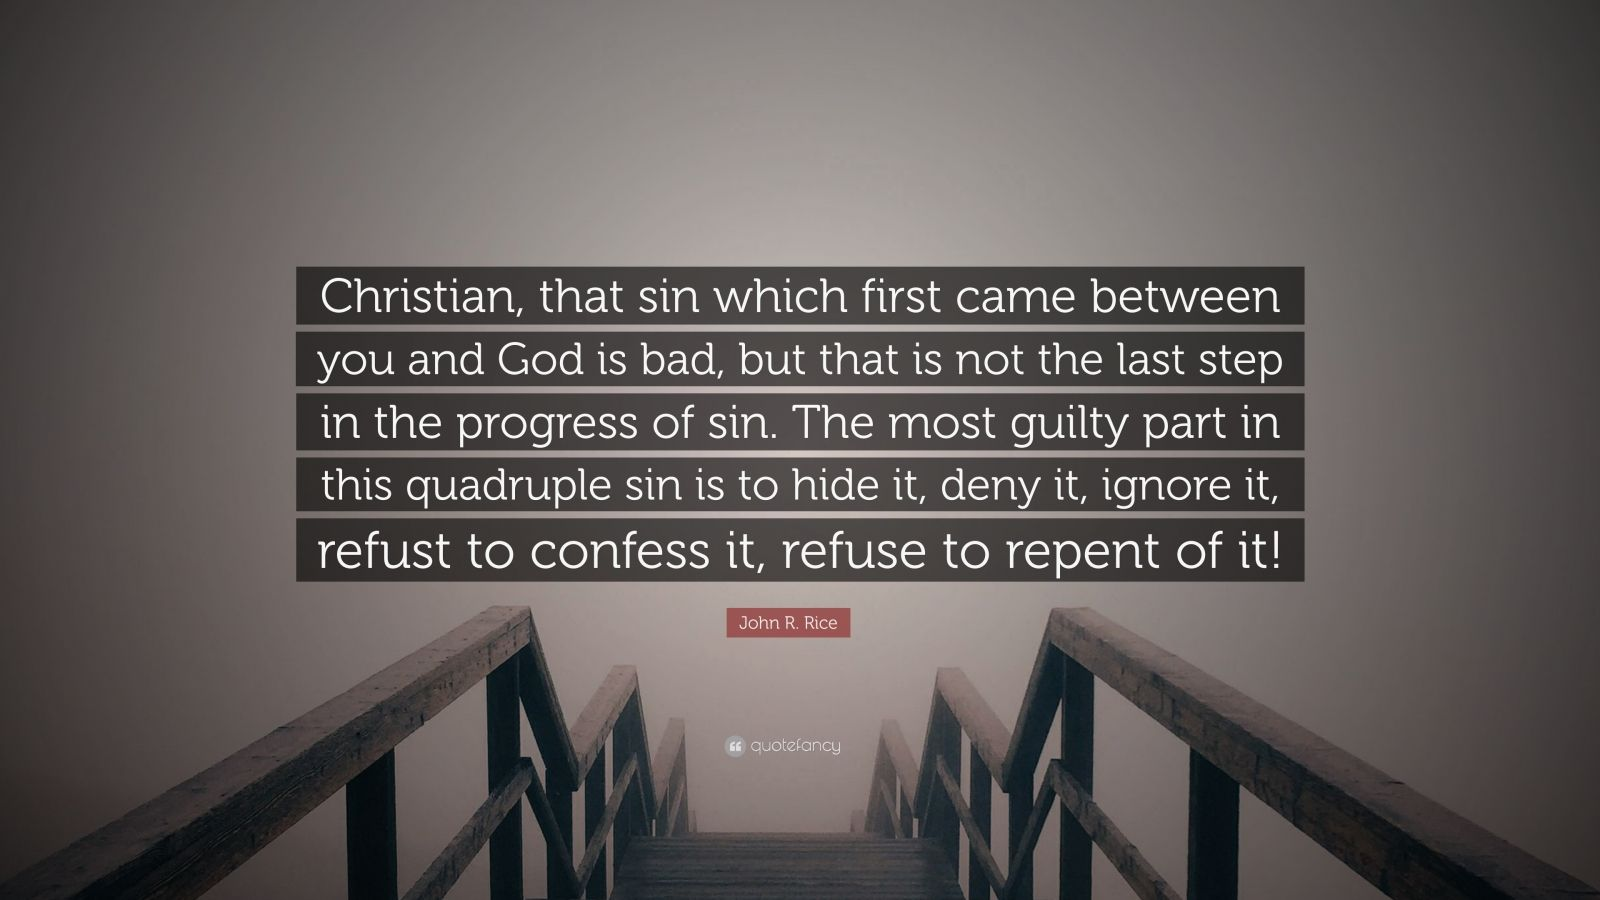 "John R. Rice Quote: ""Christian, that sin which first came between you and God is bad, but that is not the last step in the progress of sin. The most guilty part in this quadruple sin is to hide it, deny it, ignore it, refust to confess it, refuse to repent of it!"""